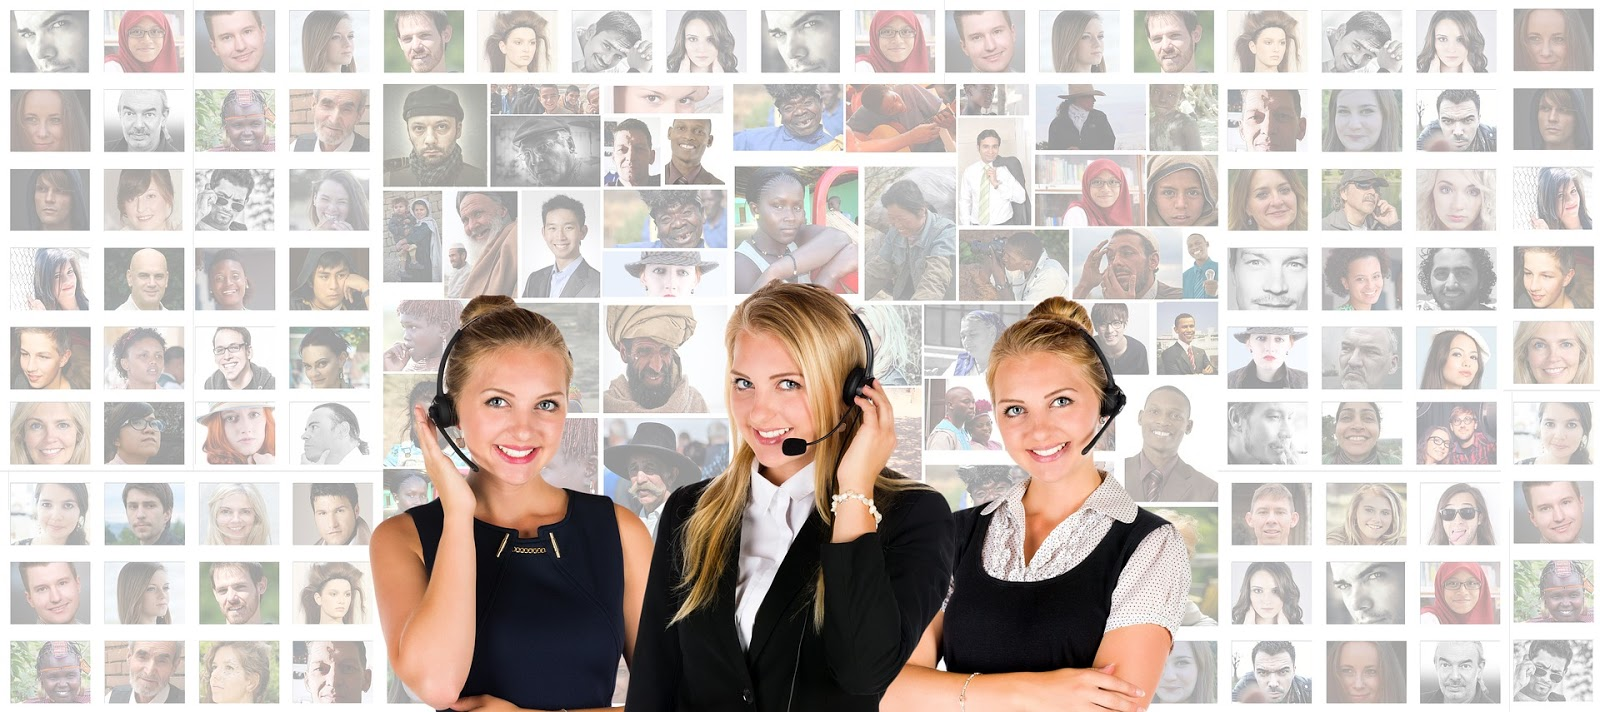 3 female customer service reps with headsets.